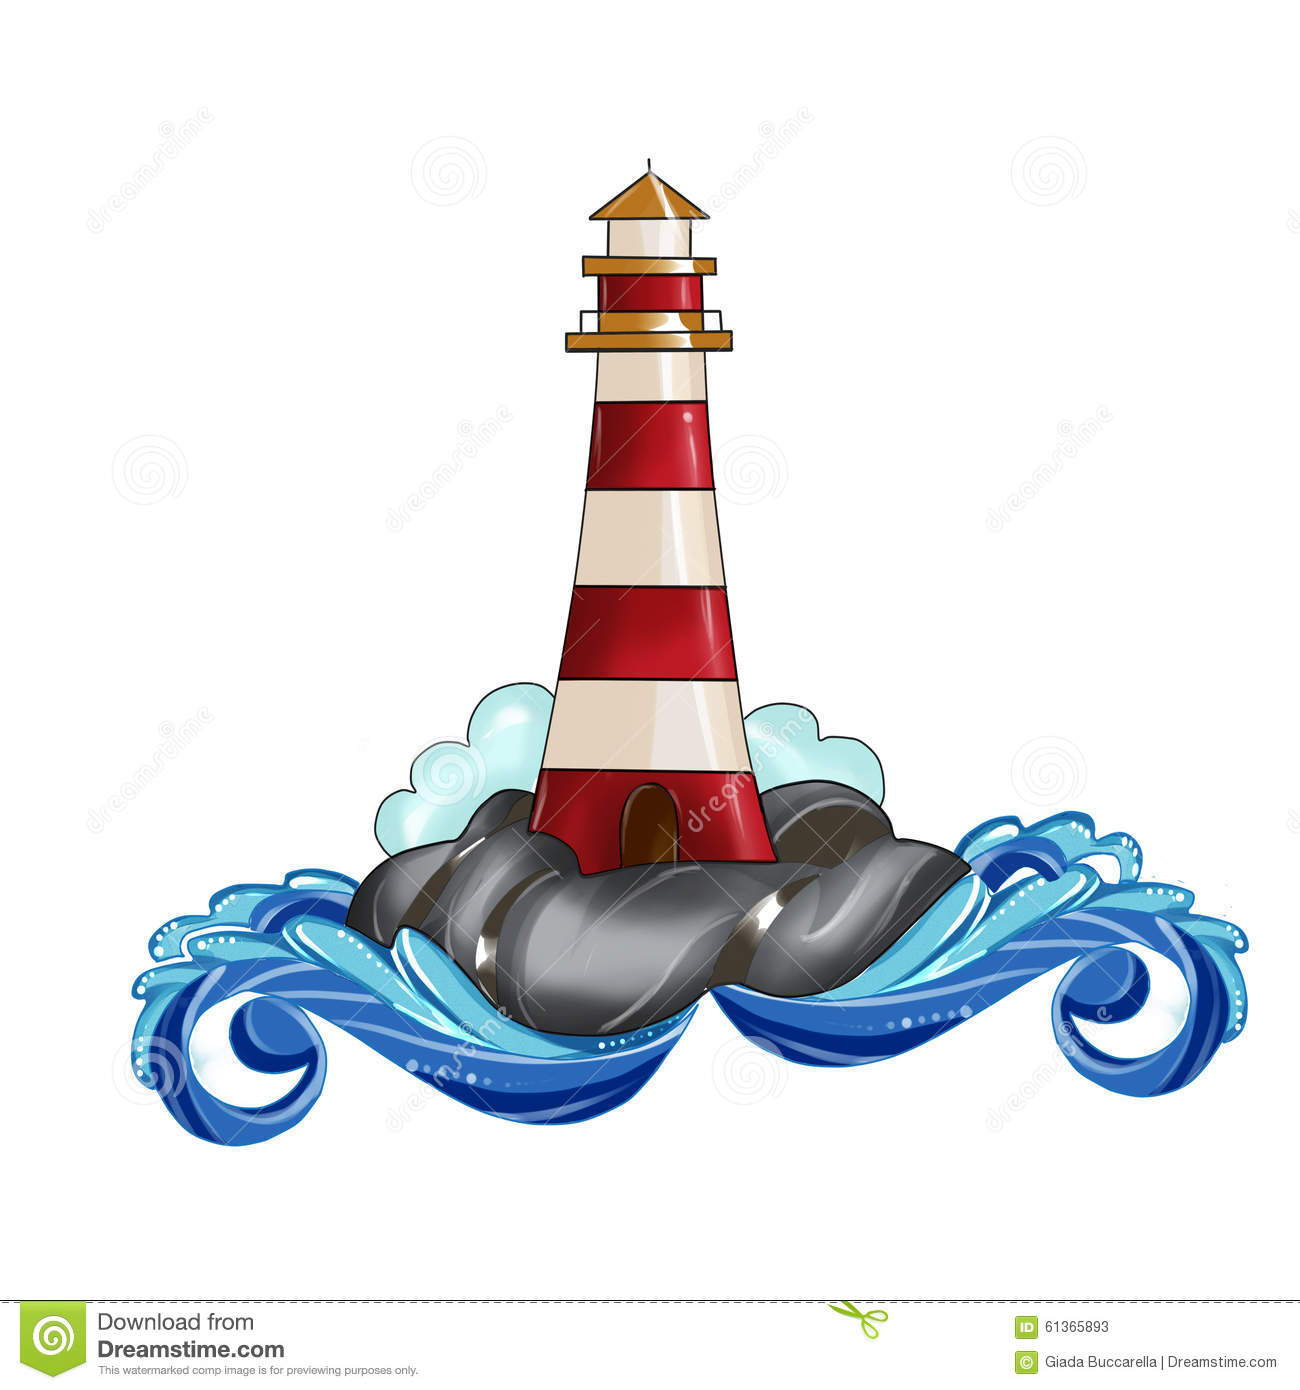 Lighthouse Clip art Illustration Watercolor